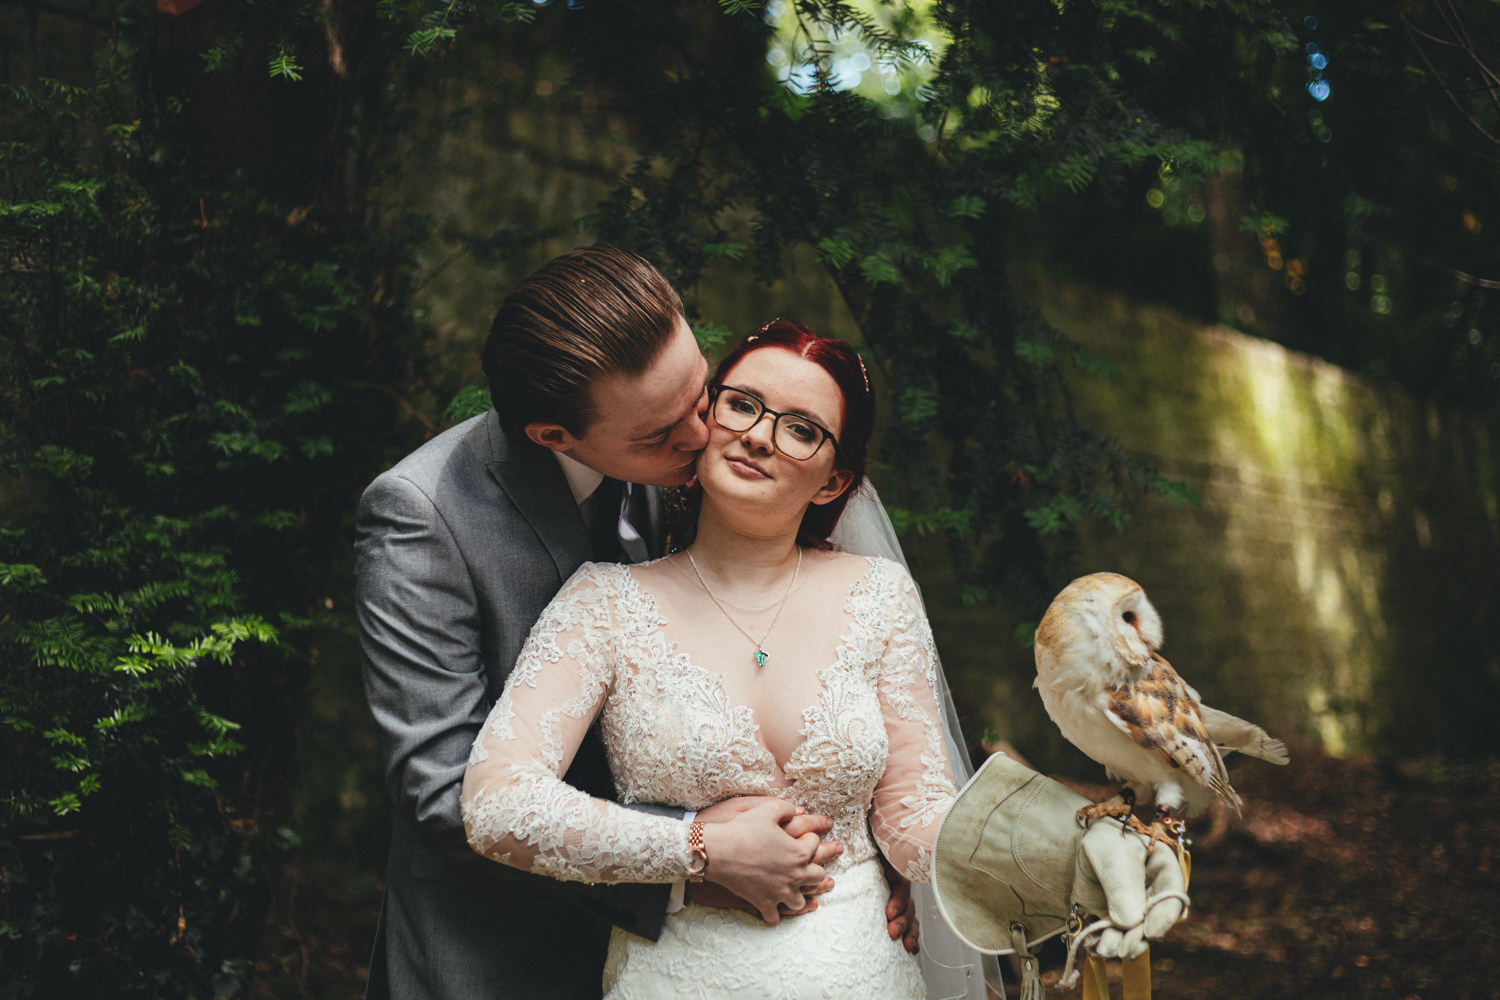 wedding owl, bride & groom with an owl, bride & groom portrait with an owl, barn owl at a wedding, owl at wedding, wedding owl, wedding owls, barn owl & bride, woodland wedding, quirky woodland wedding, alternative wedding, game of thrones wedding